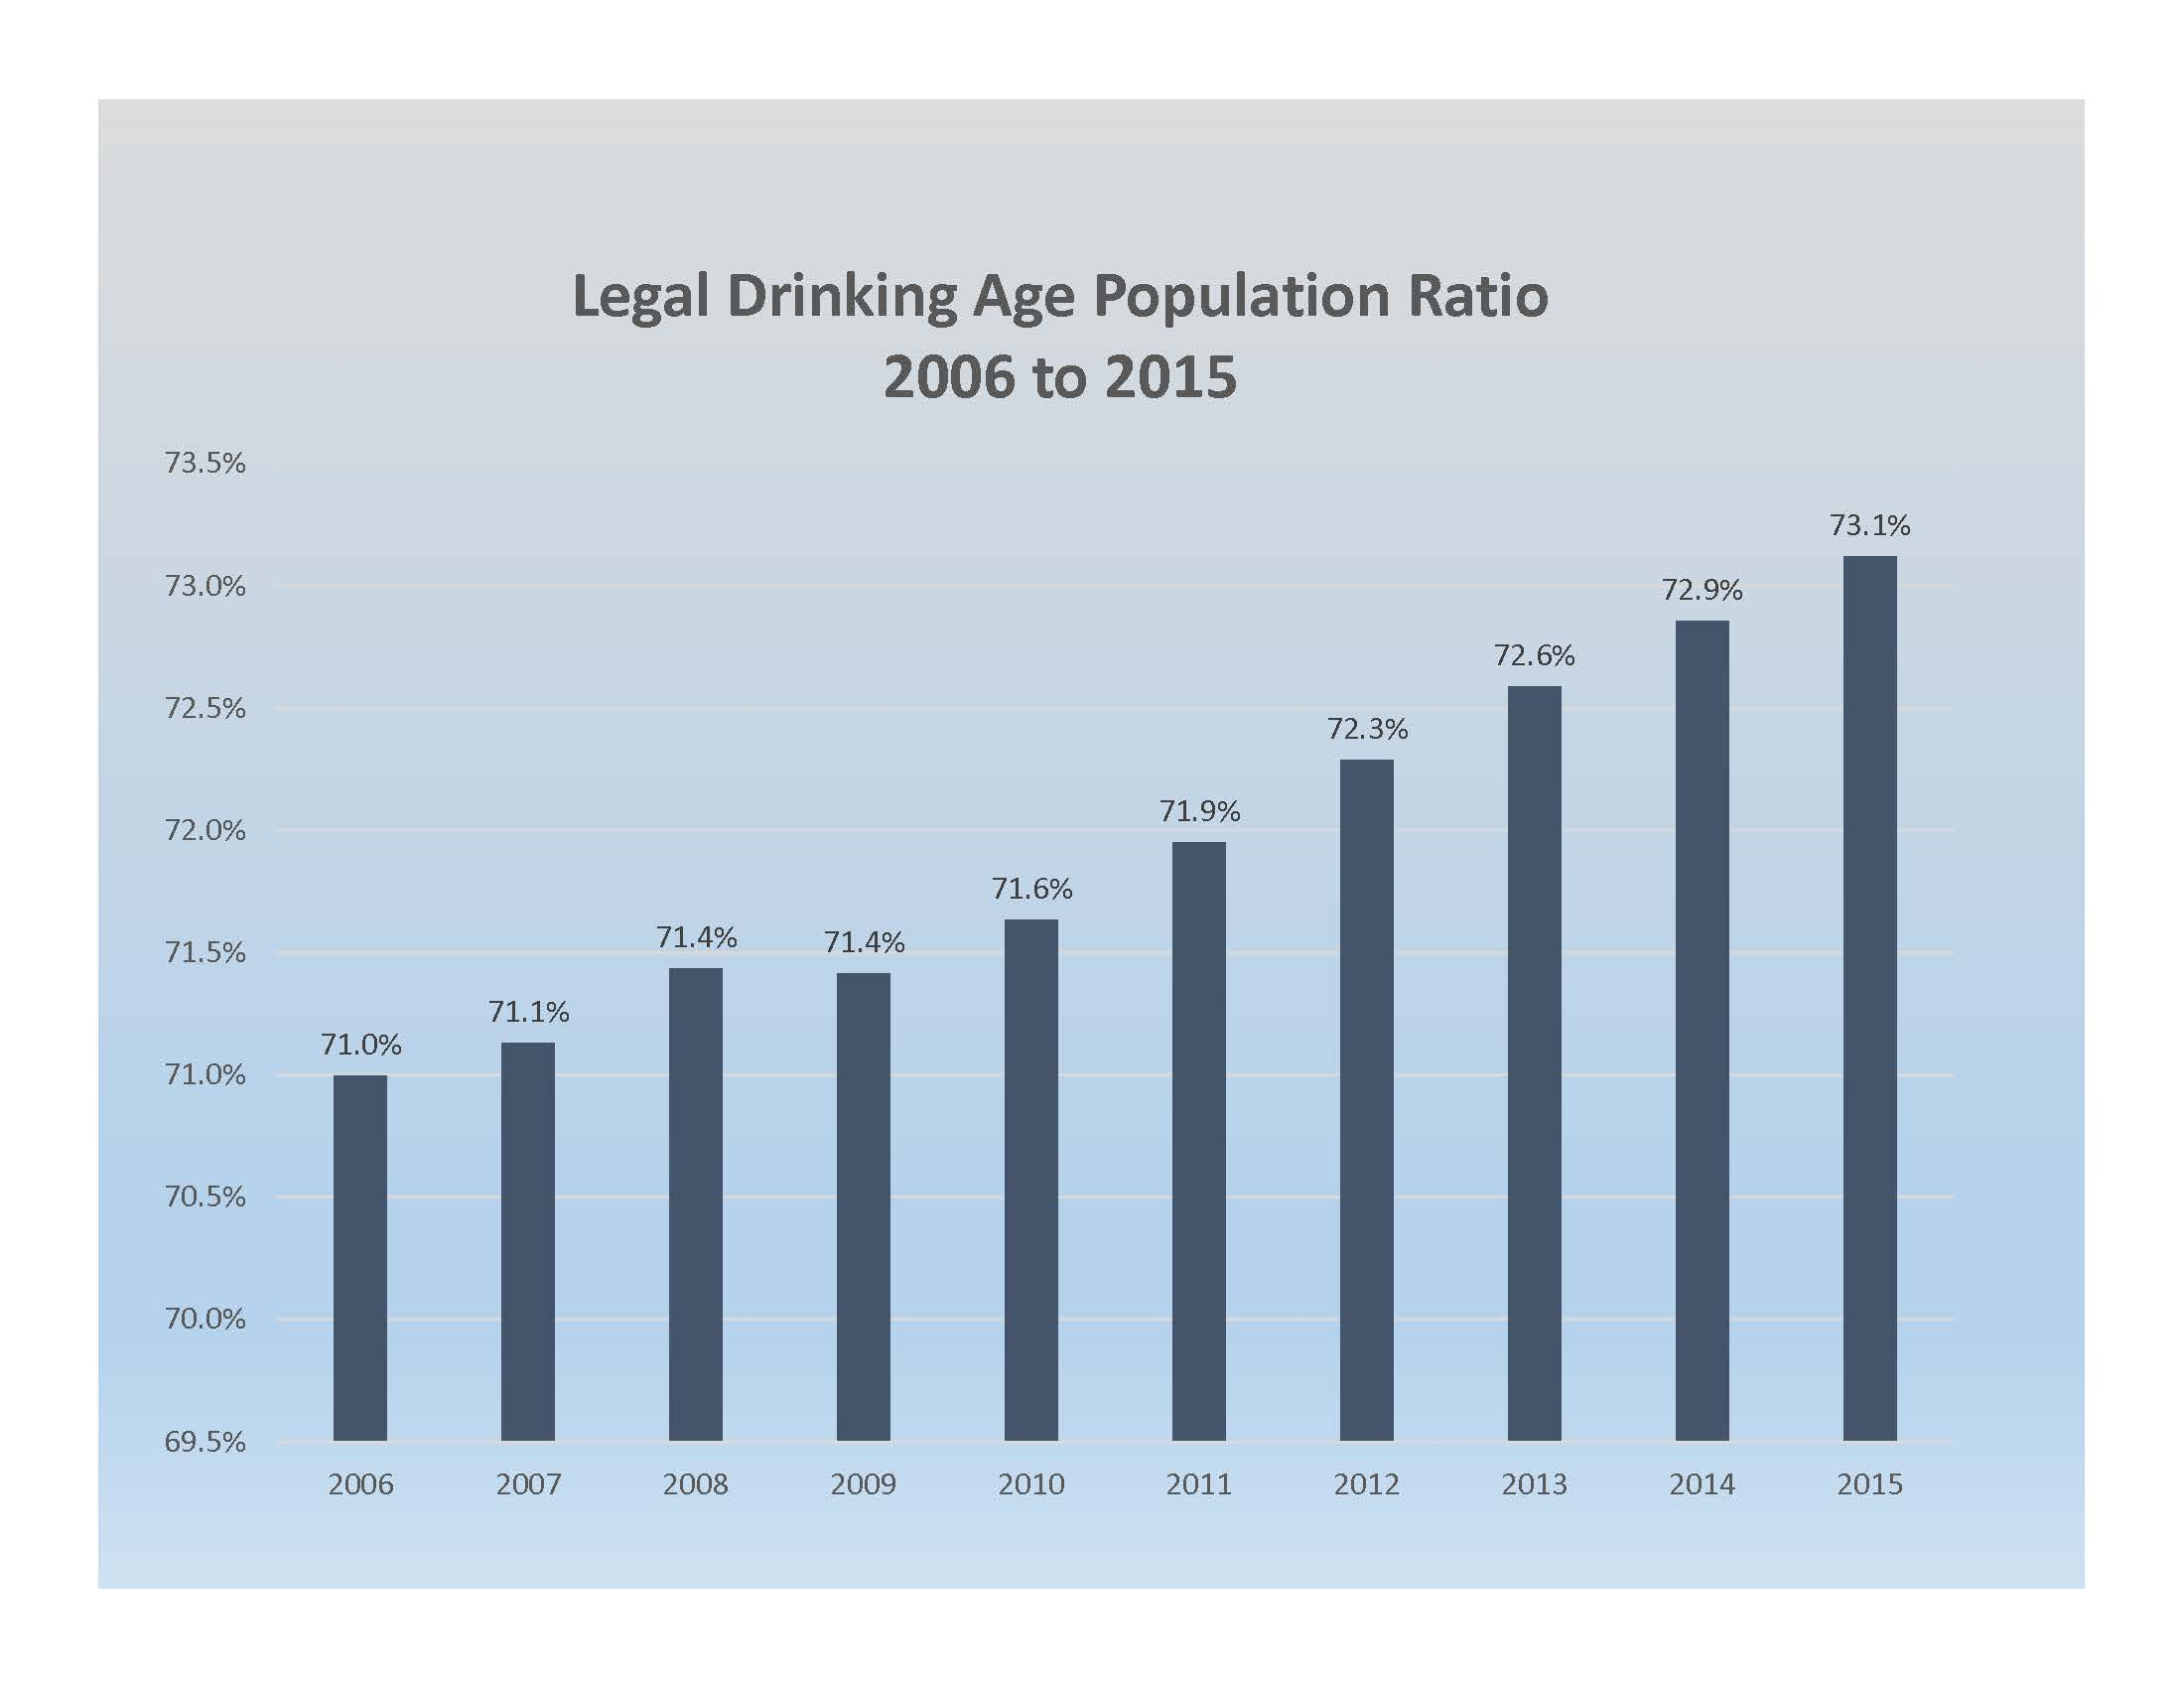 Legal Drinking Age Population Ratio